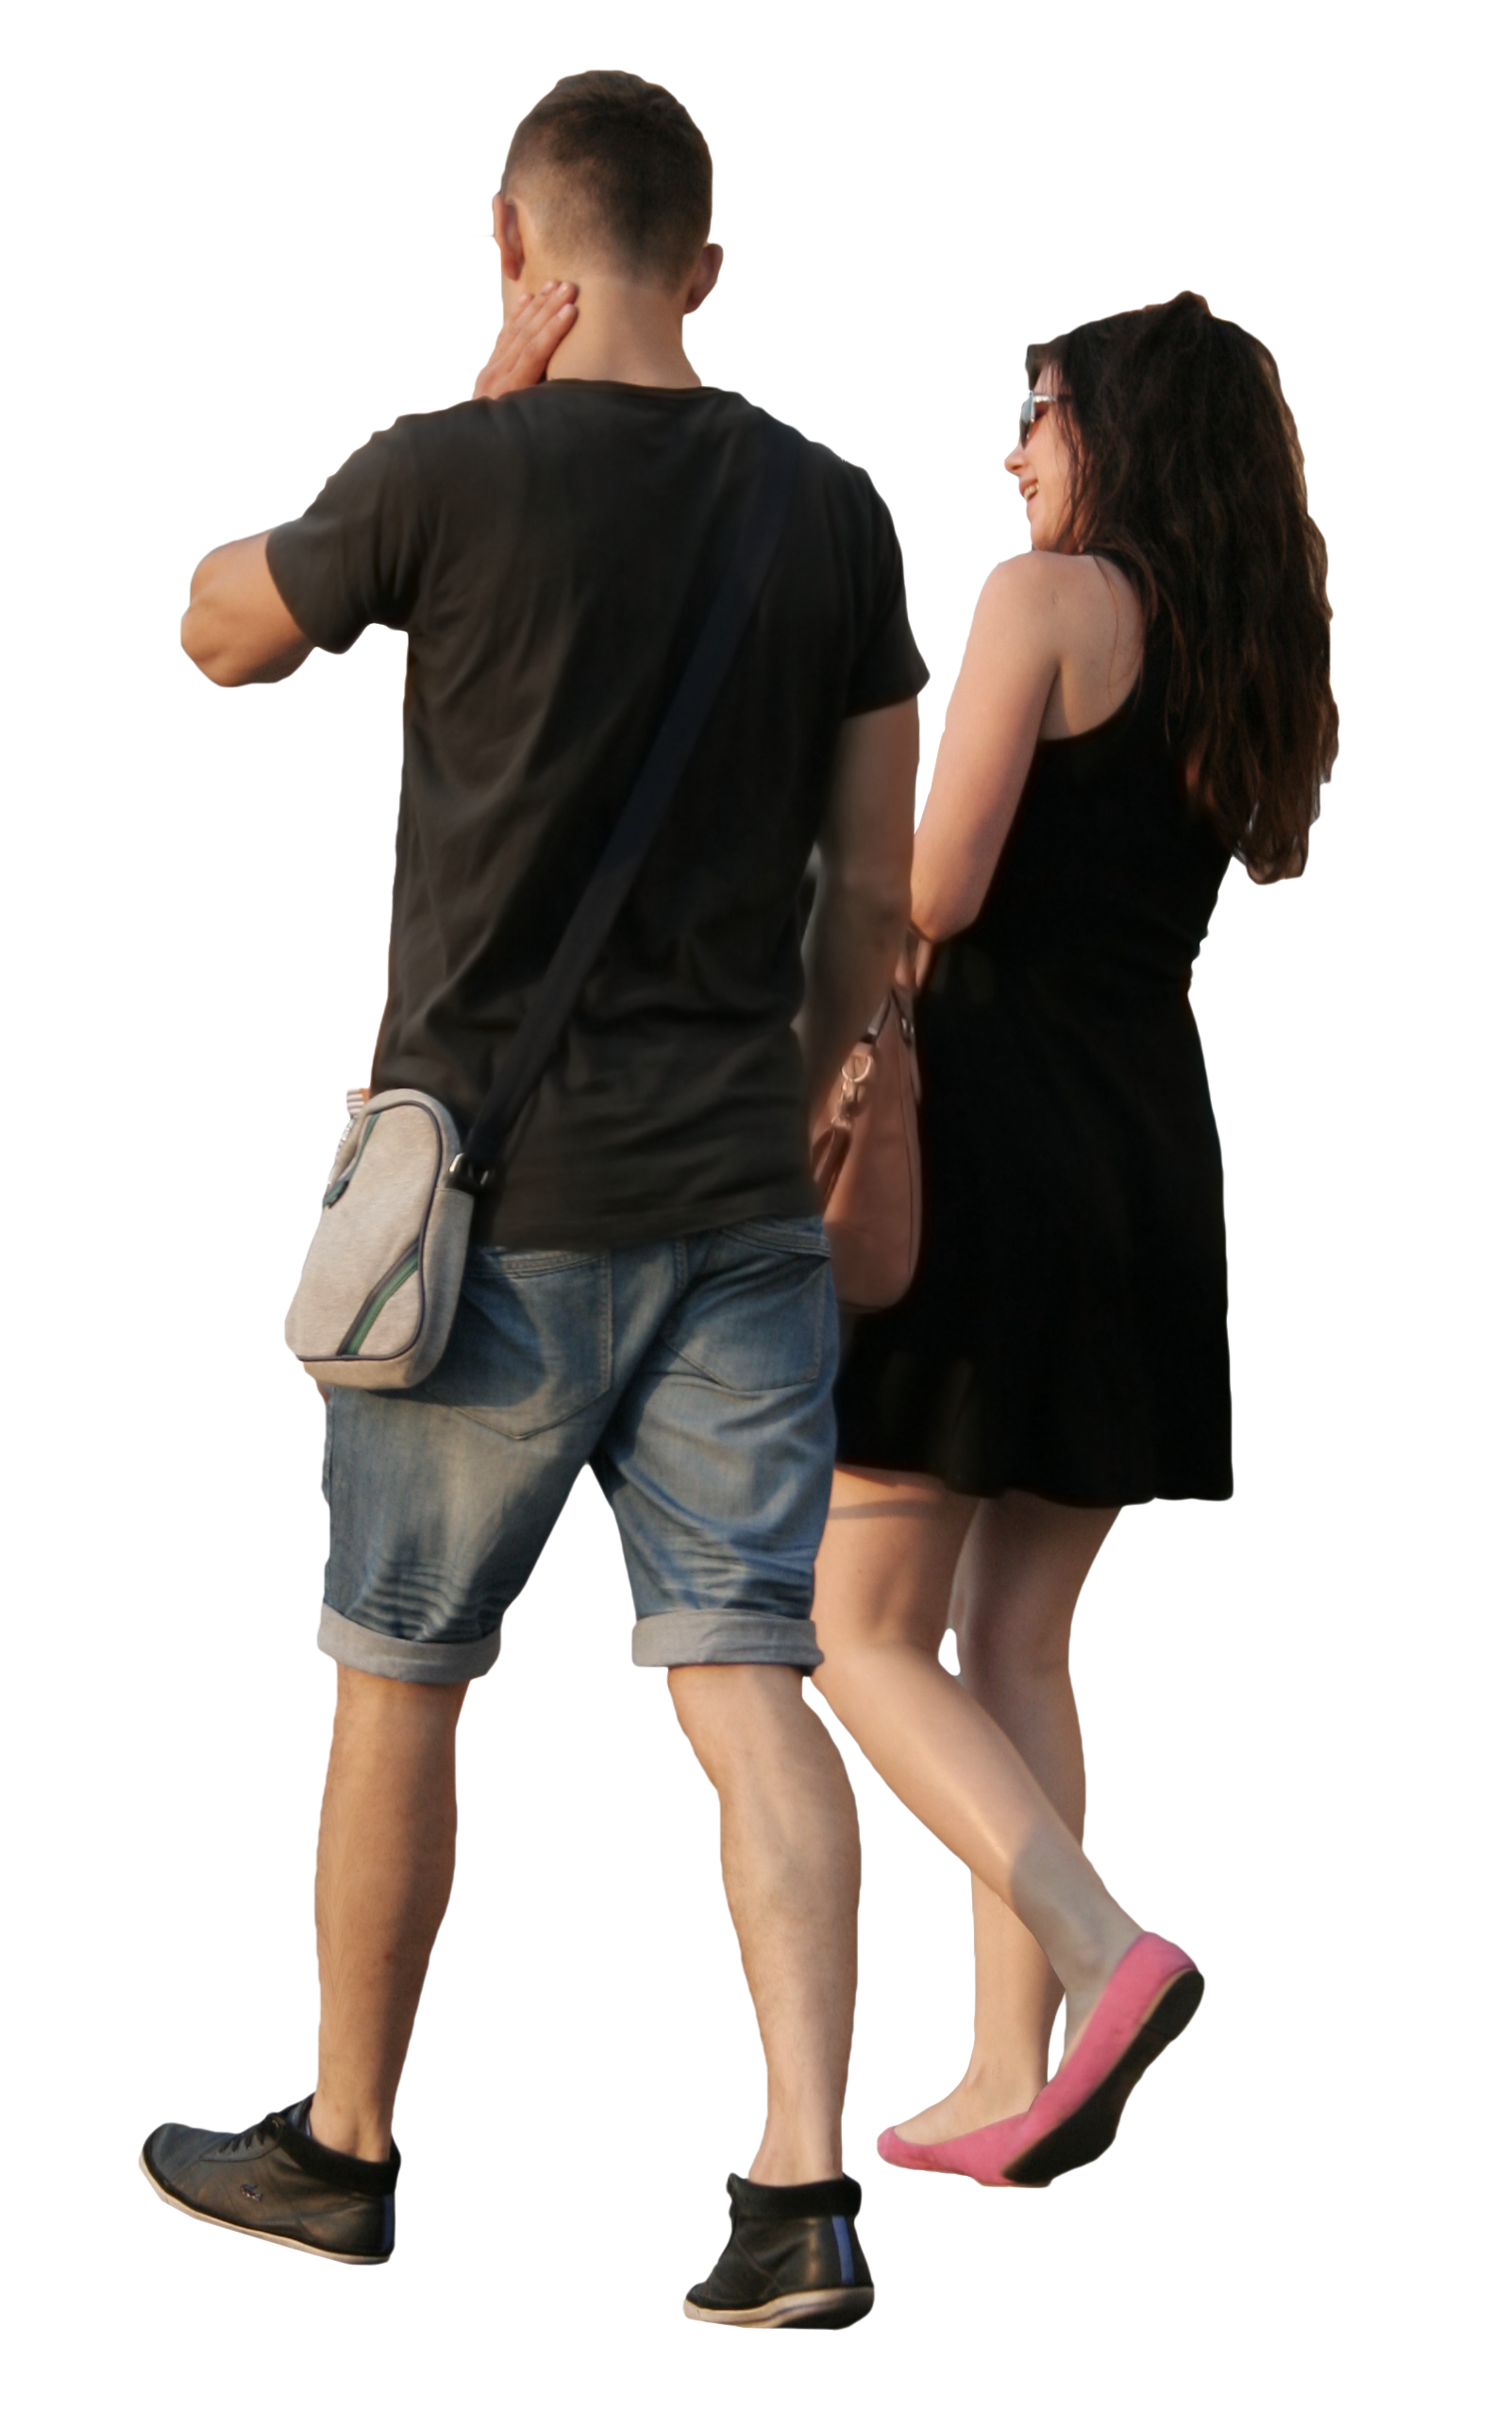 Couple walking png. Happy free cut out